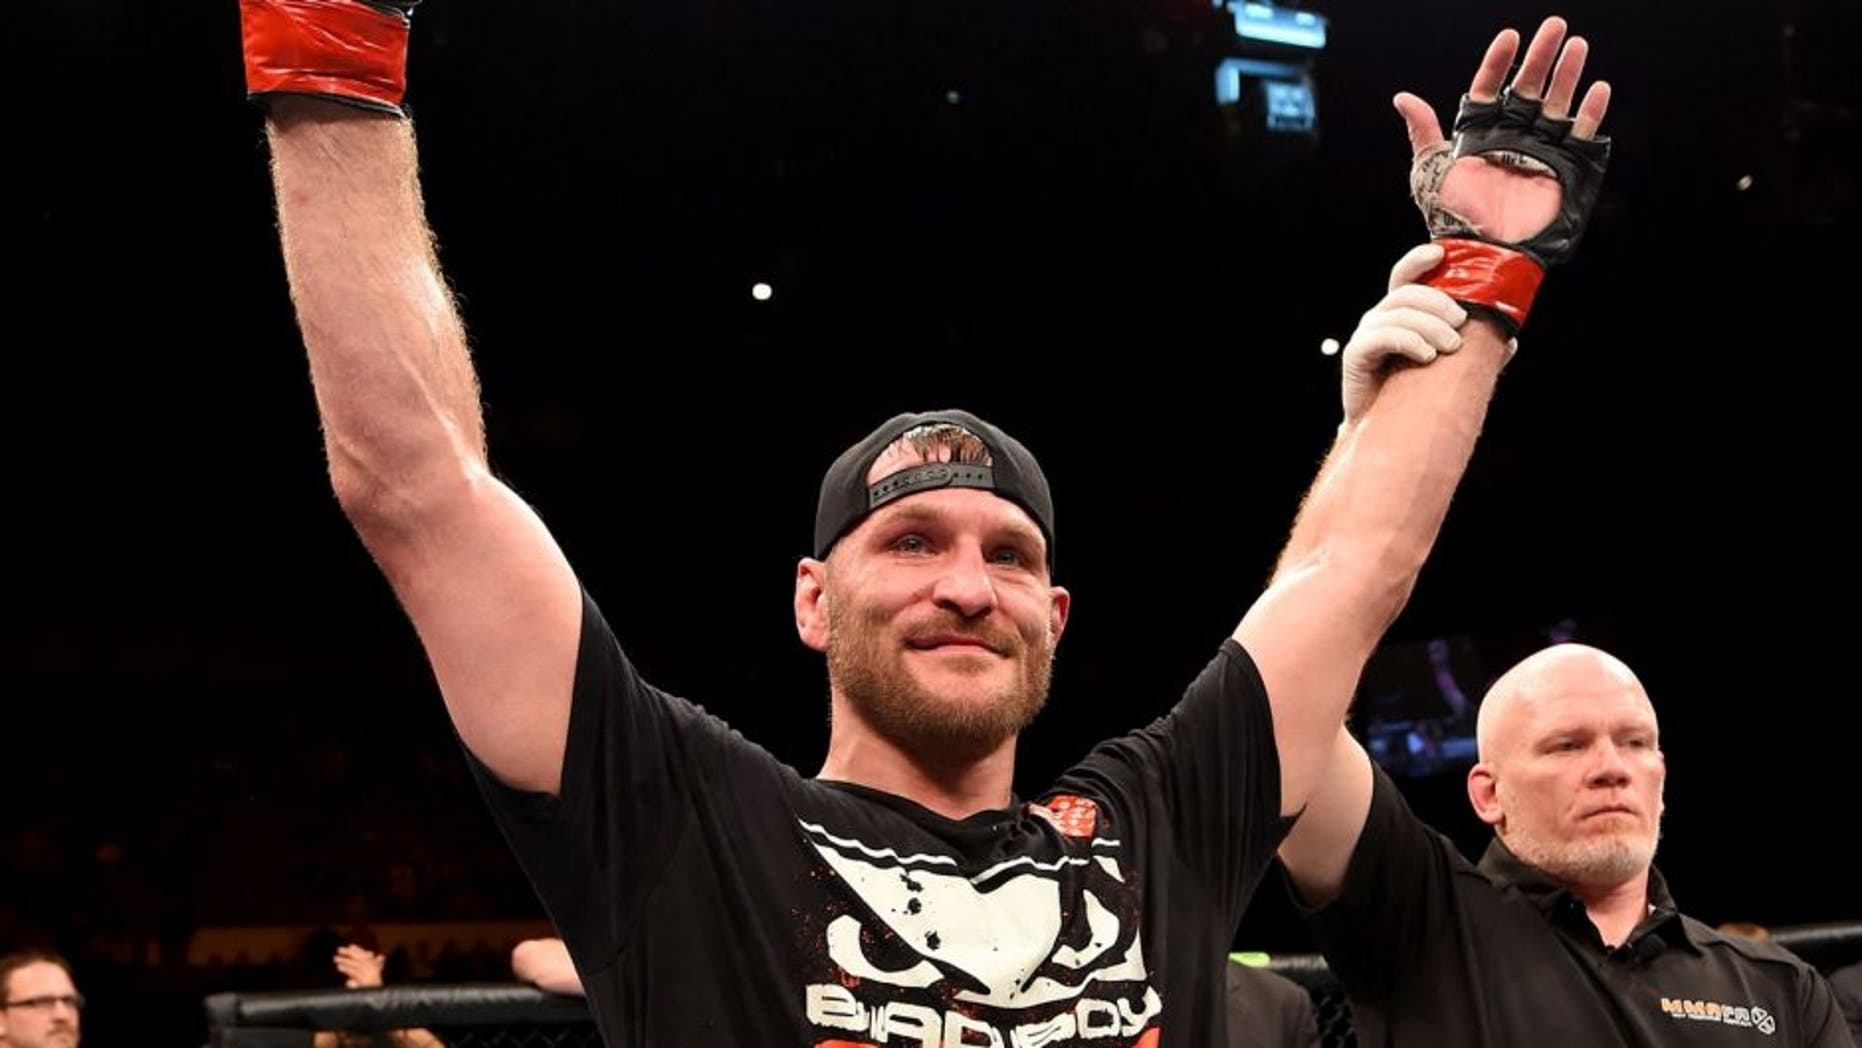 ADELAIDE, AUSTRALIA - MAY 10: Stipe Miocic celebrates his TKO victory over Mark Hunt in their heavyweight bout during the UFC Fight Night event at the Adelaide Entertainment Centre on May 10, 2015 in Adelaide, Australia. (Photo by Josh Hedges/Zuffa LLC/Zuffa LLC via Getty Images)